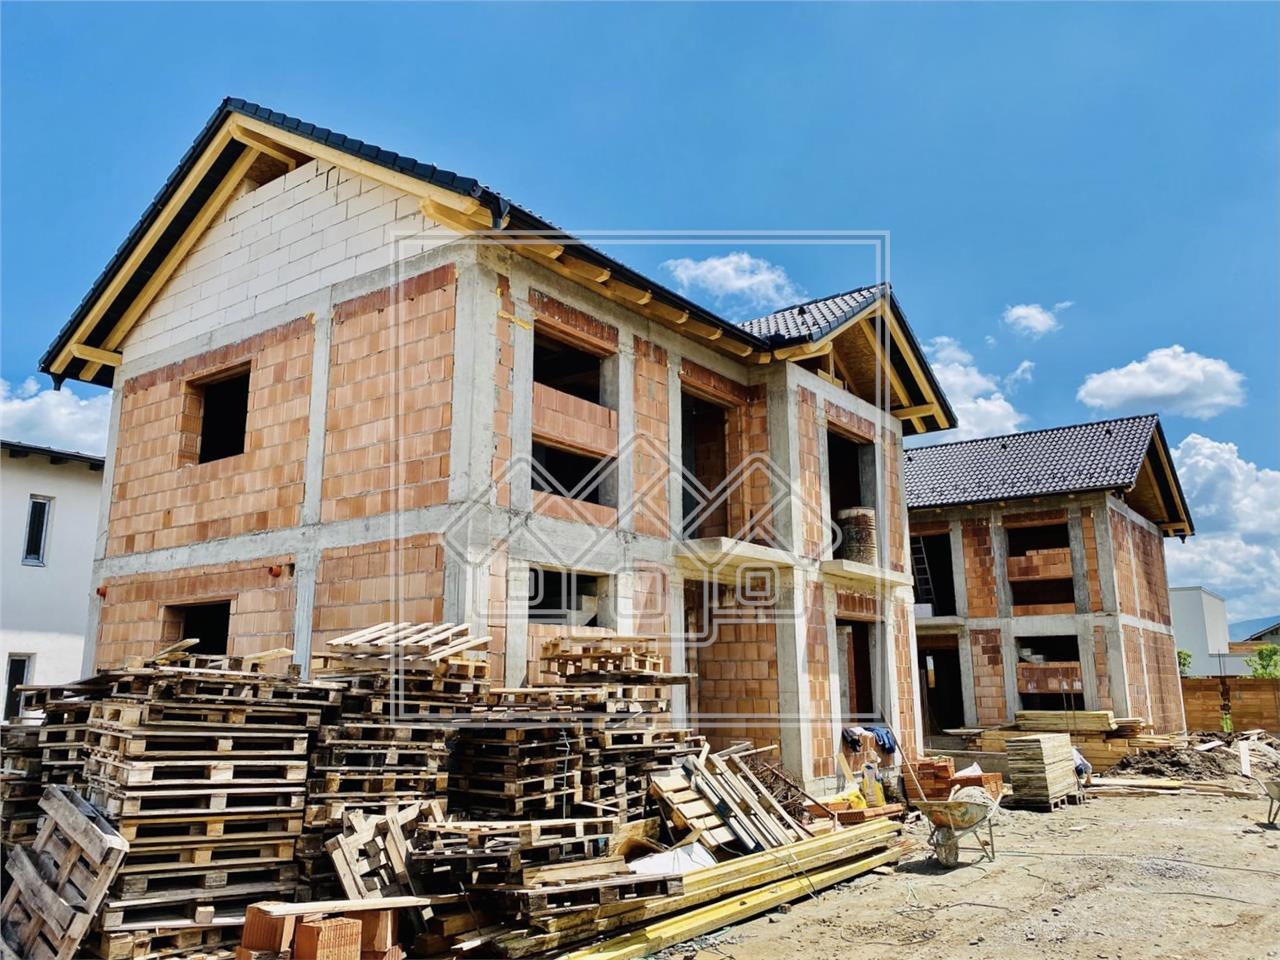 House for sale in Sibiu  - individual - carport - private street